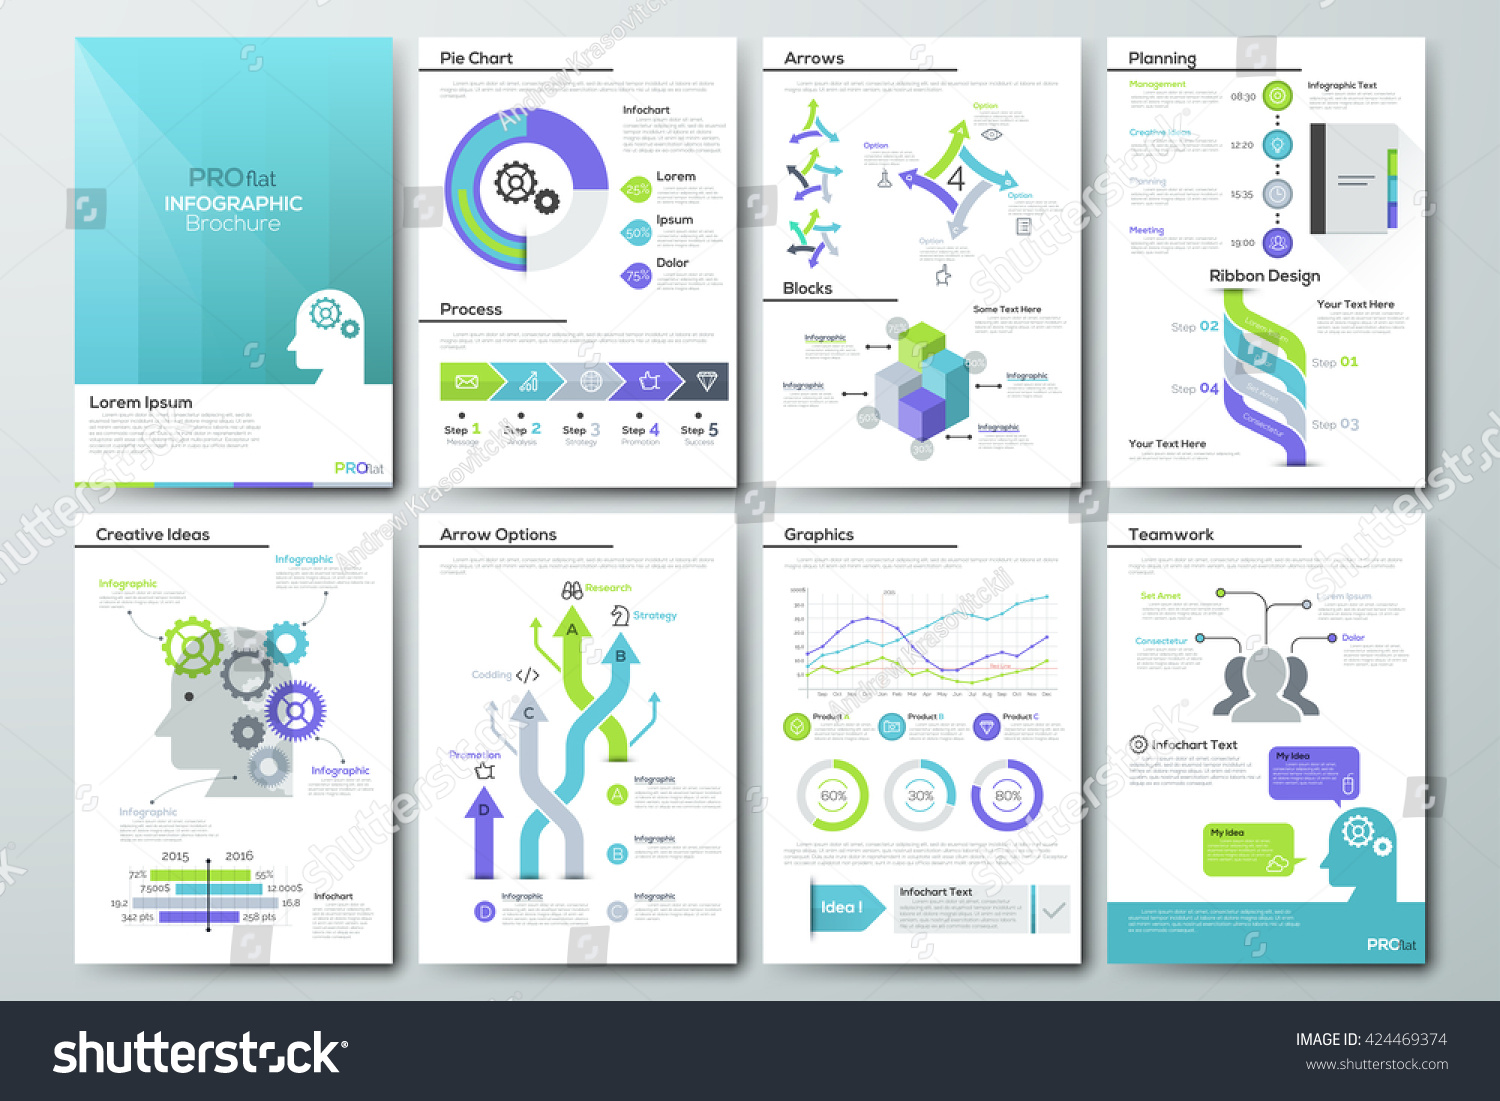 Data Visualization Brochures Infographic Business Templates Stock ...